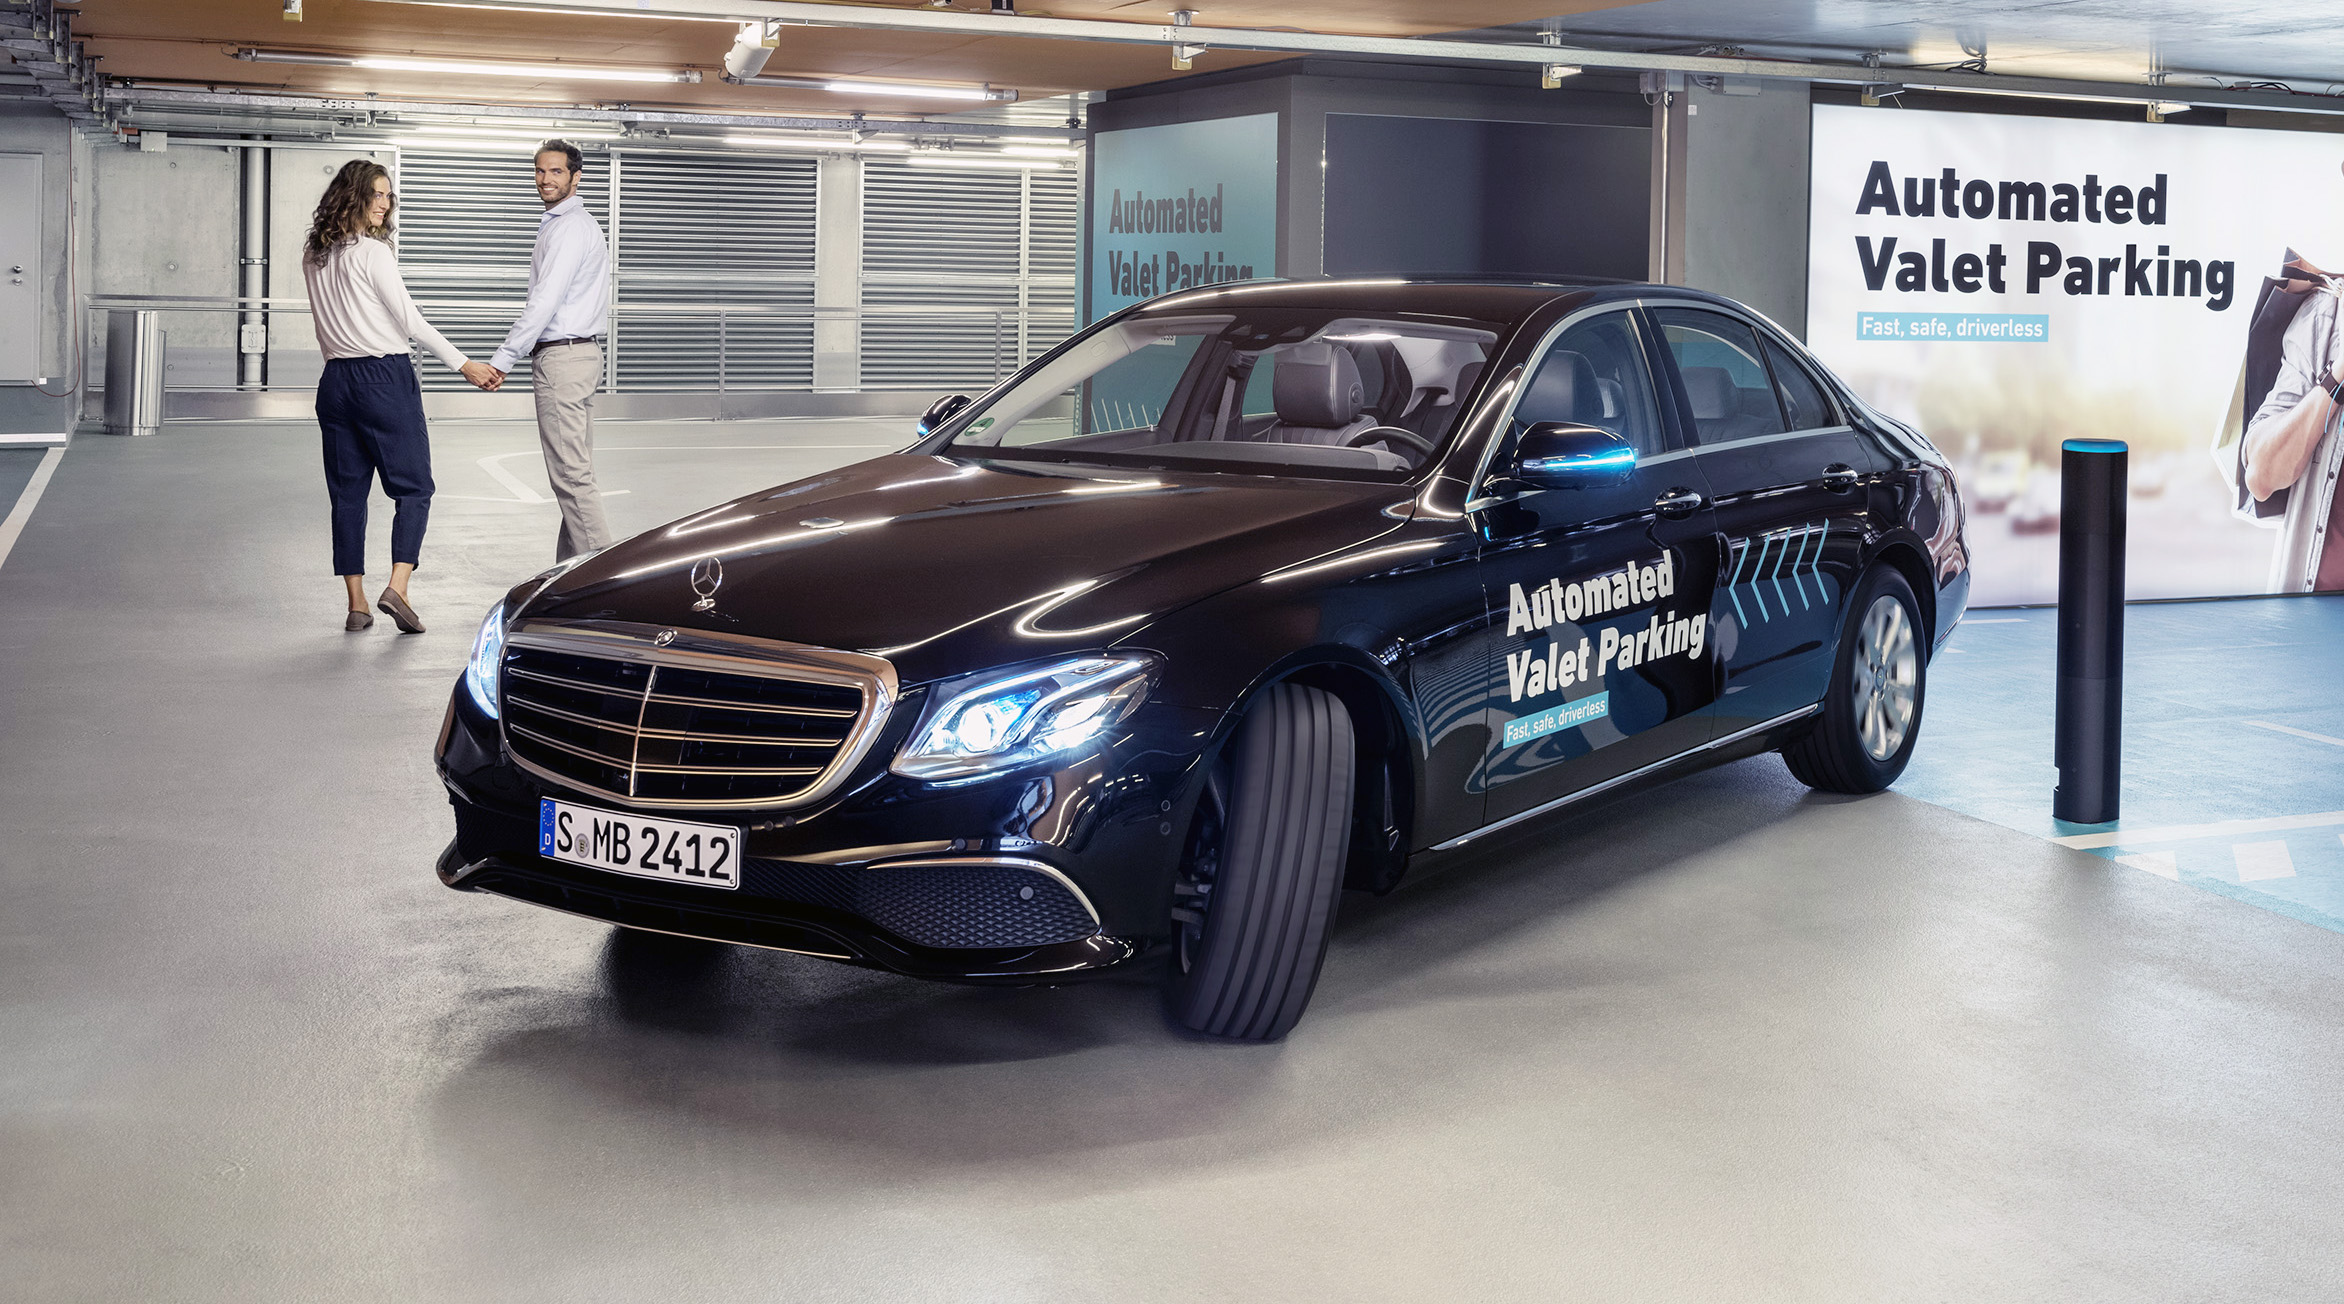 Bosch mercedes benz launch automated valet parking site for Parking at mercedes benz superdome